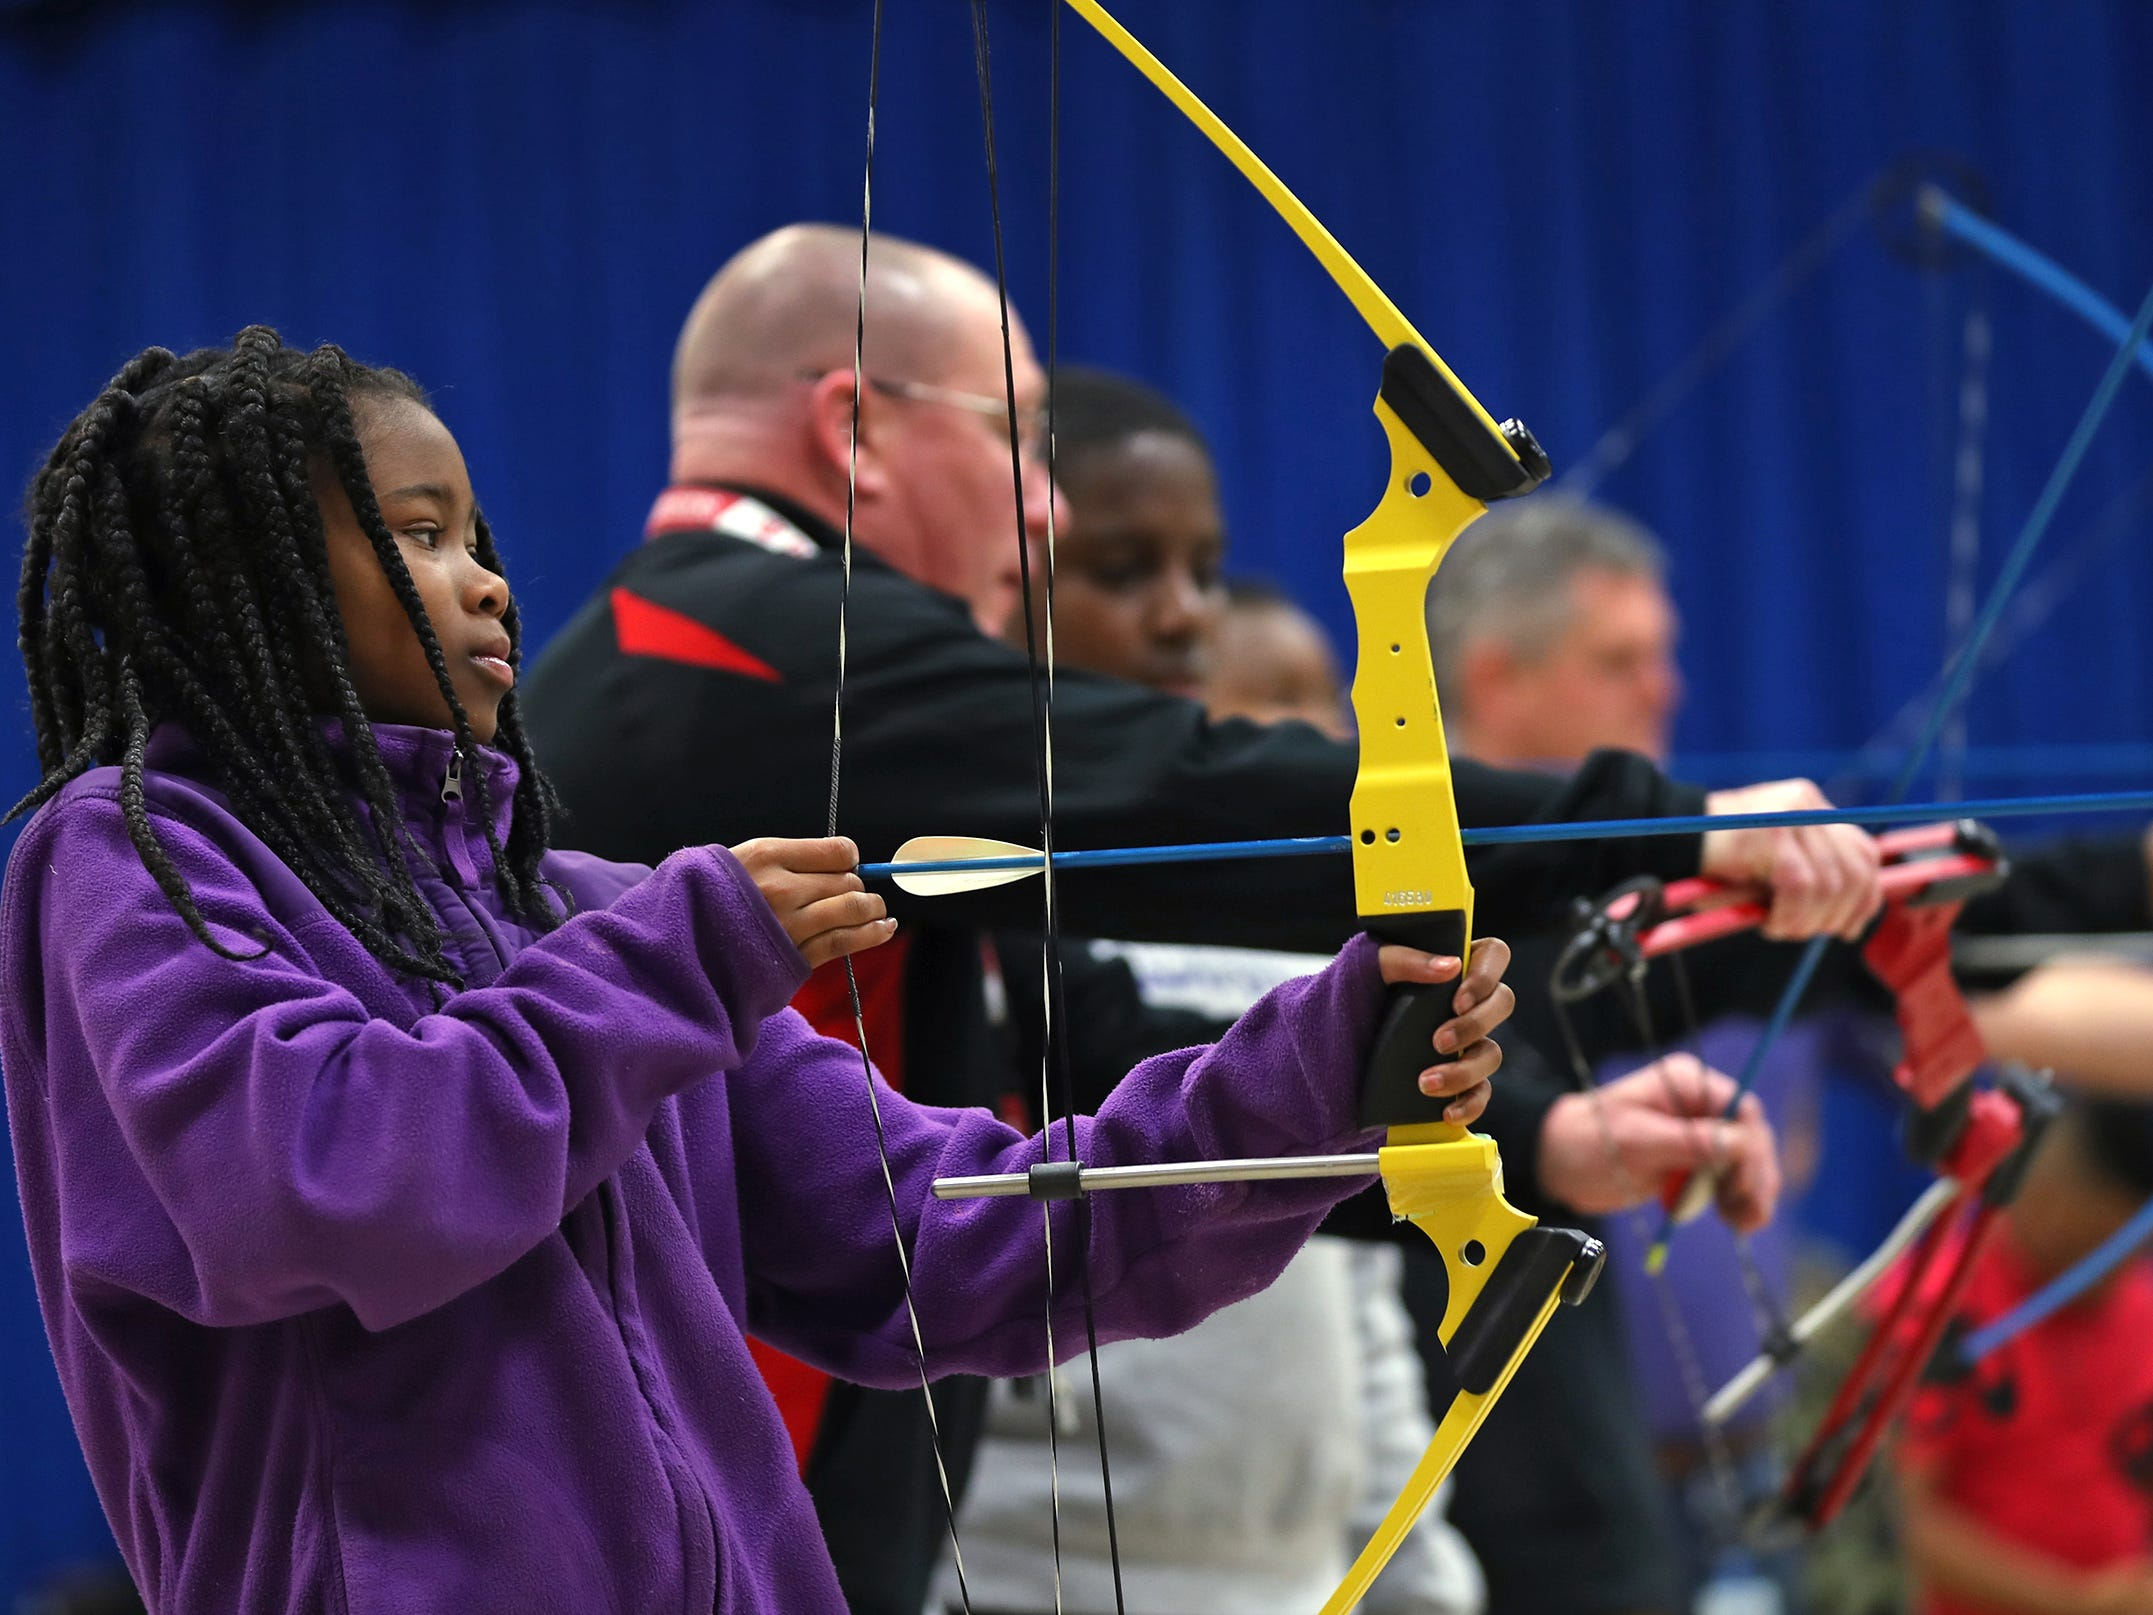 Brianna Smith, left, takes aim to shoot during archery class at Lew Wallace Elementary IPS 107, Thursday, Dec. 20, 2018.